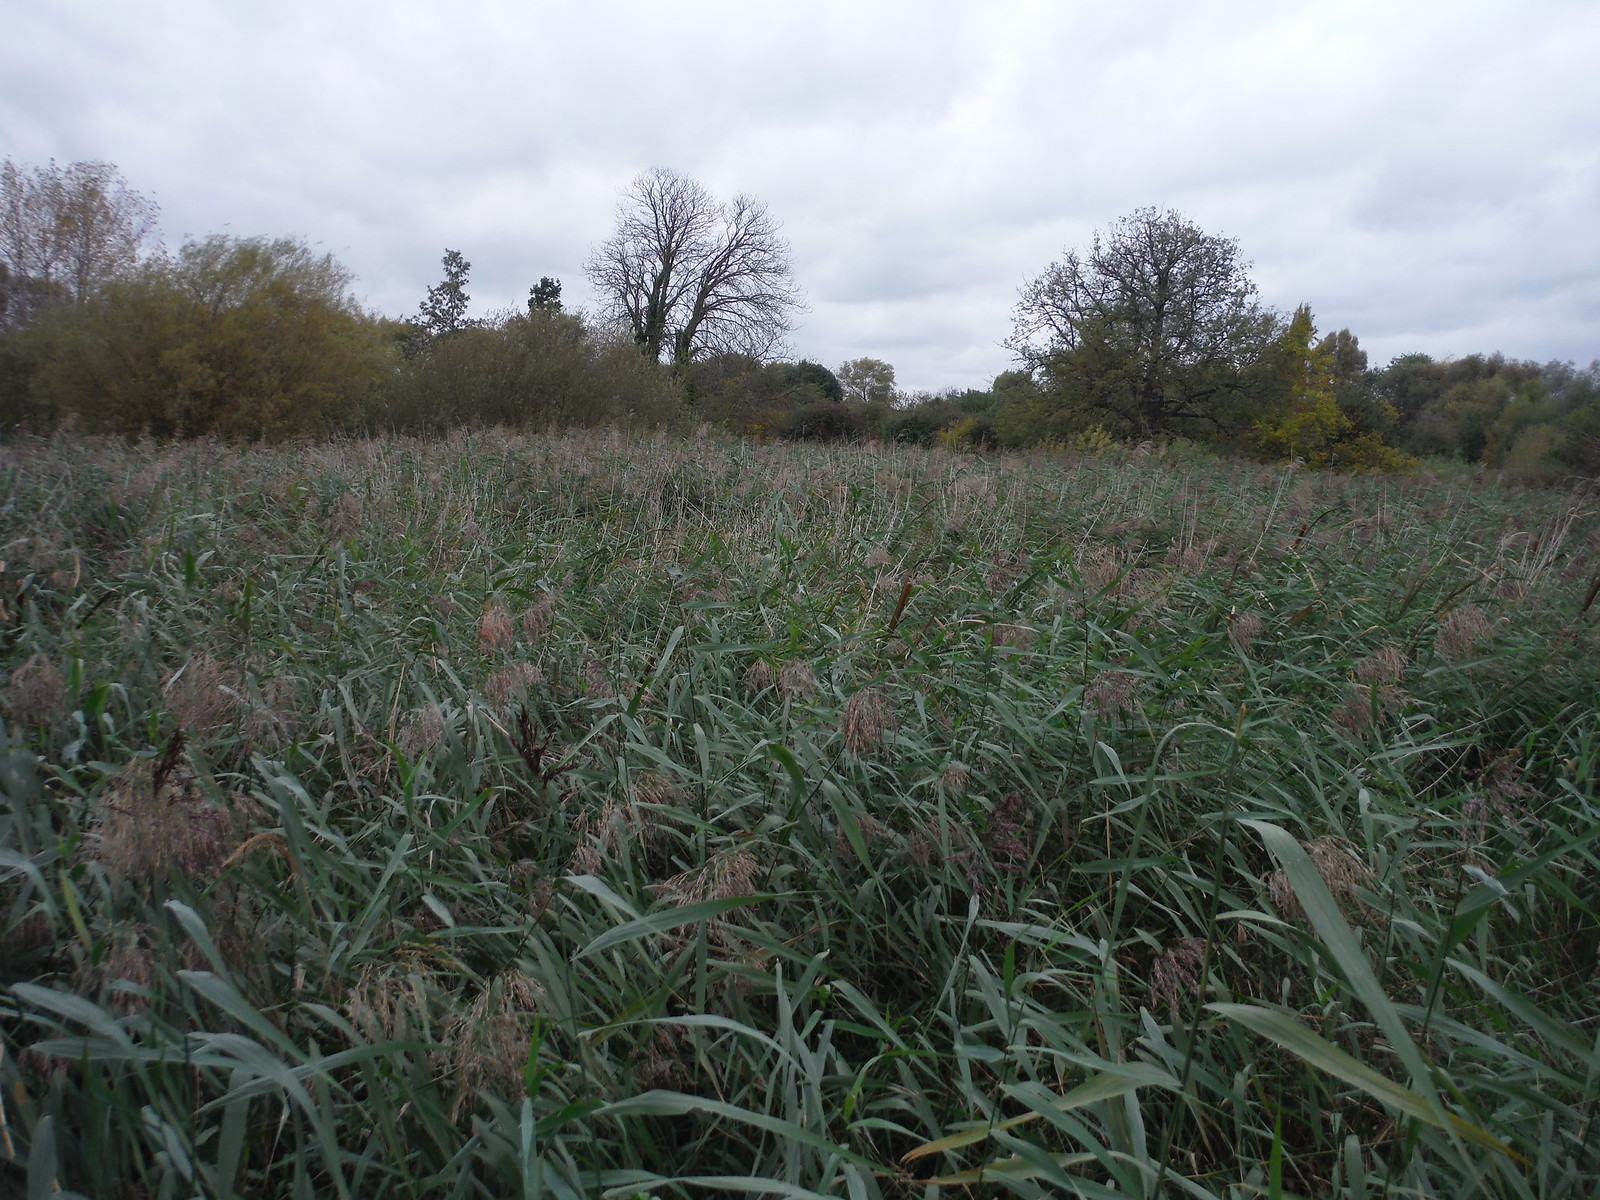 Reedbeds in Wetlands, Morden Hall Park SWC Walk Short 13 - Morden Hall Park and Merton Abbey Mills